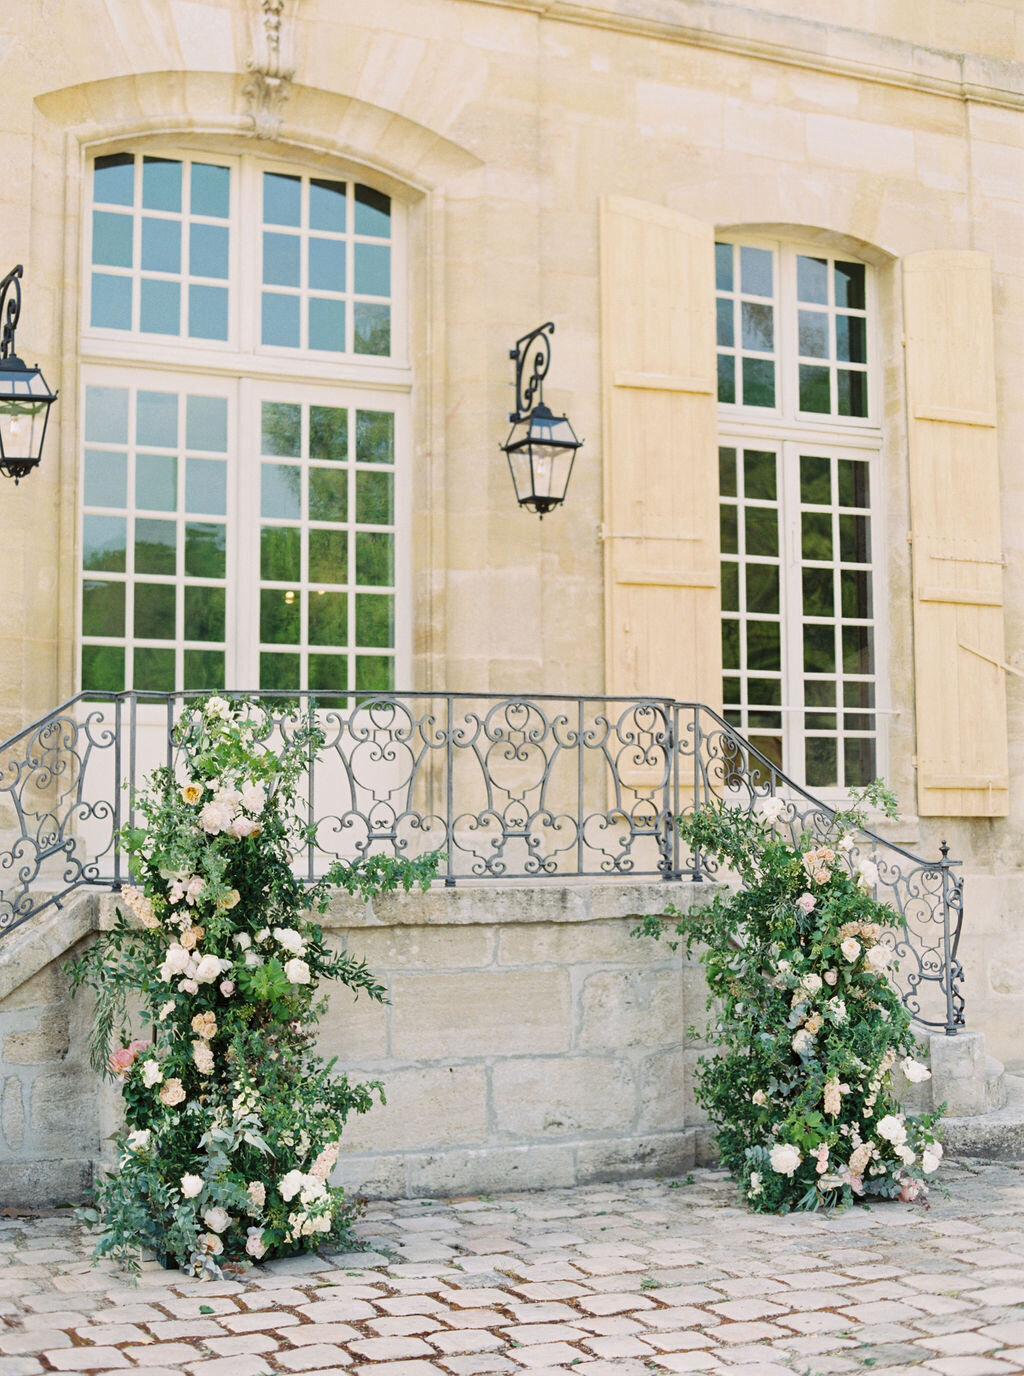 Chateau-de-Villette-wedding-Floraison37